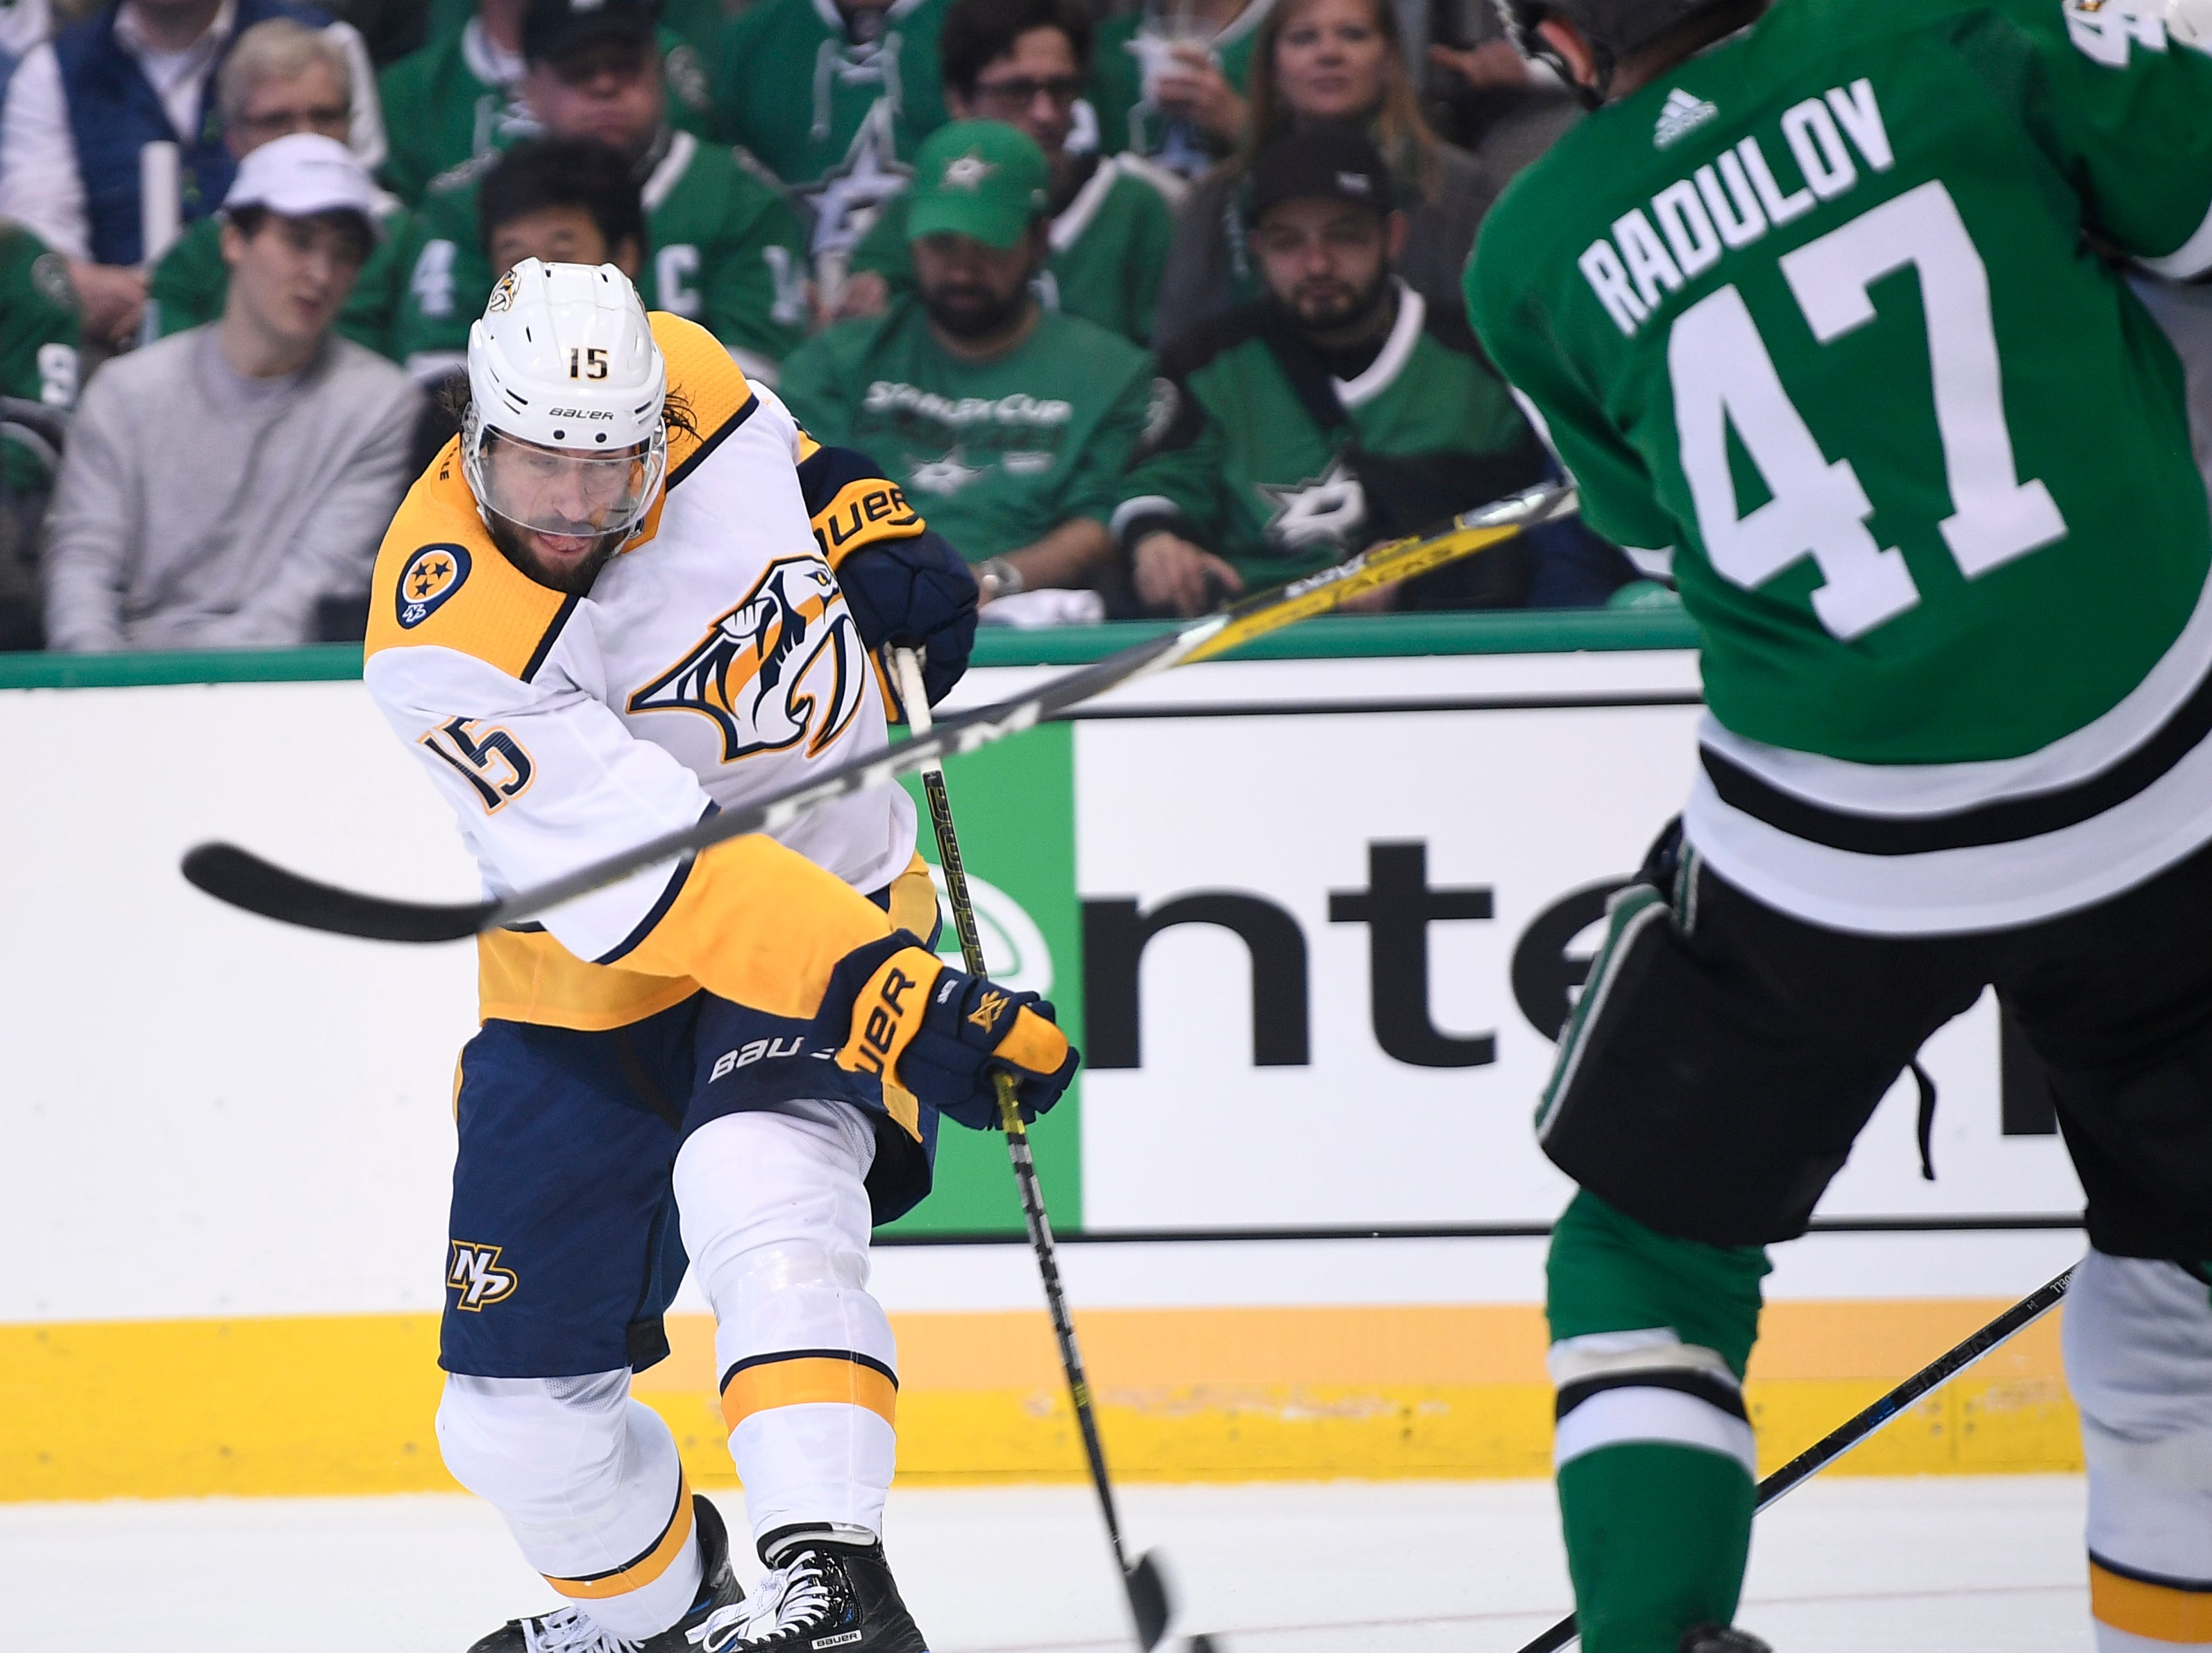 Nashville Predators right wing Craig Smith (15) moves the puck defended by Dallas Stars right wing Alexander Radulov (47) during the first period of the divisional semifinal game at the American Airlines Center in Dallas, Texas., Monday, April 15, 2019.